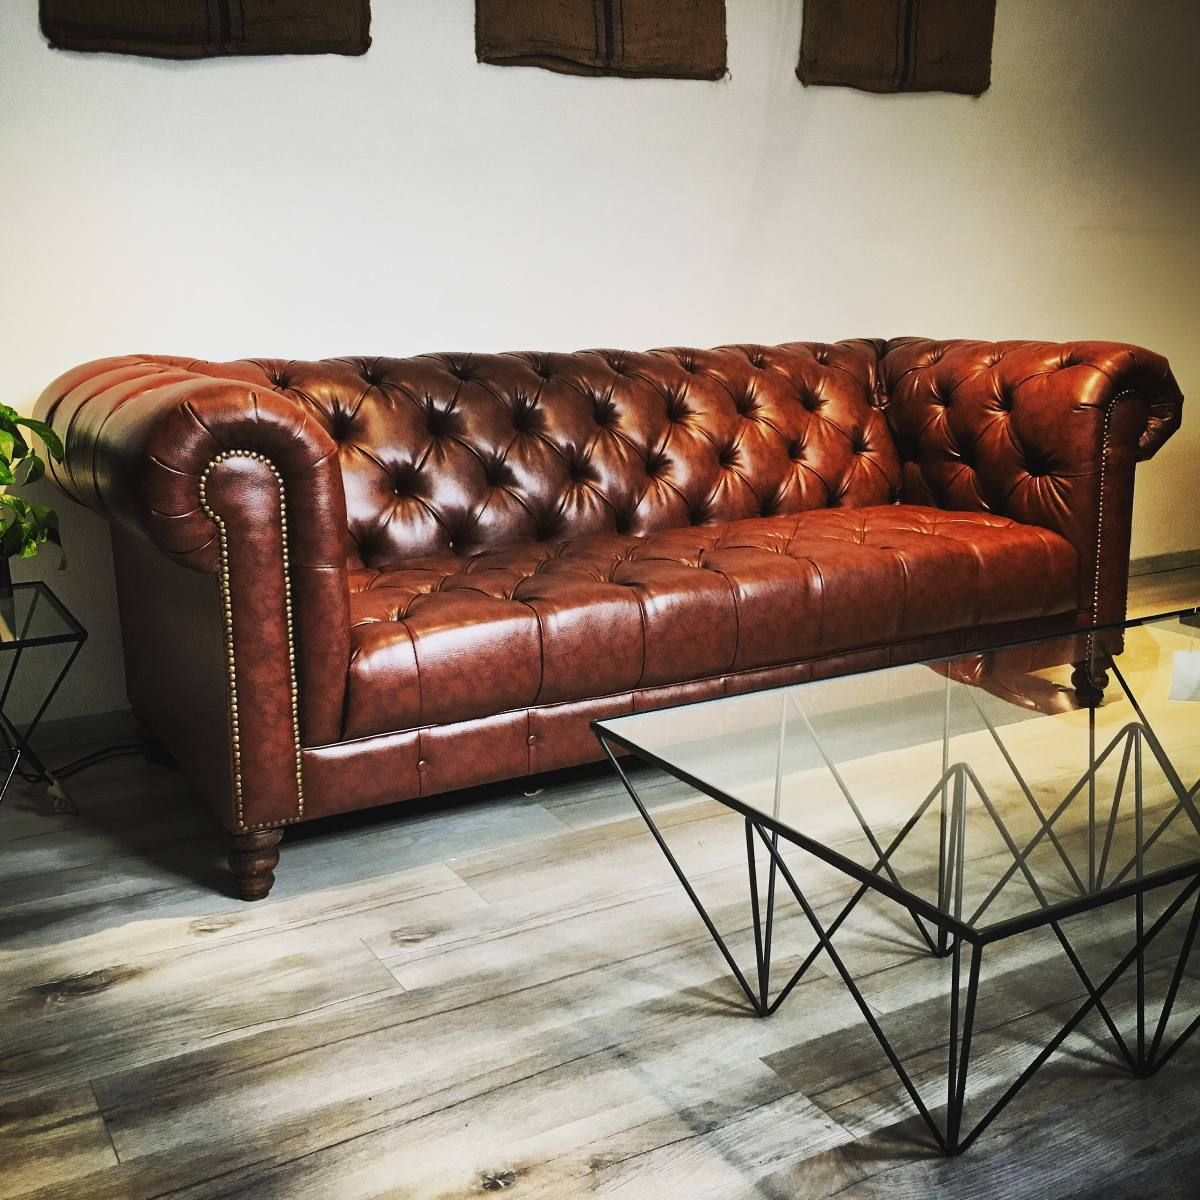 Sof Chesterfield Sala Sill N Mueble Madera Vintage Dise O Depa  # Muebles Banfield